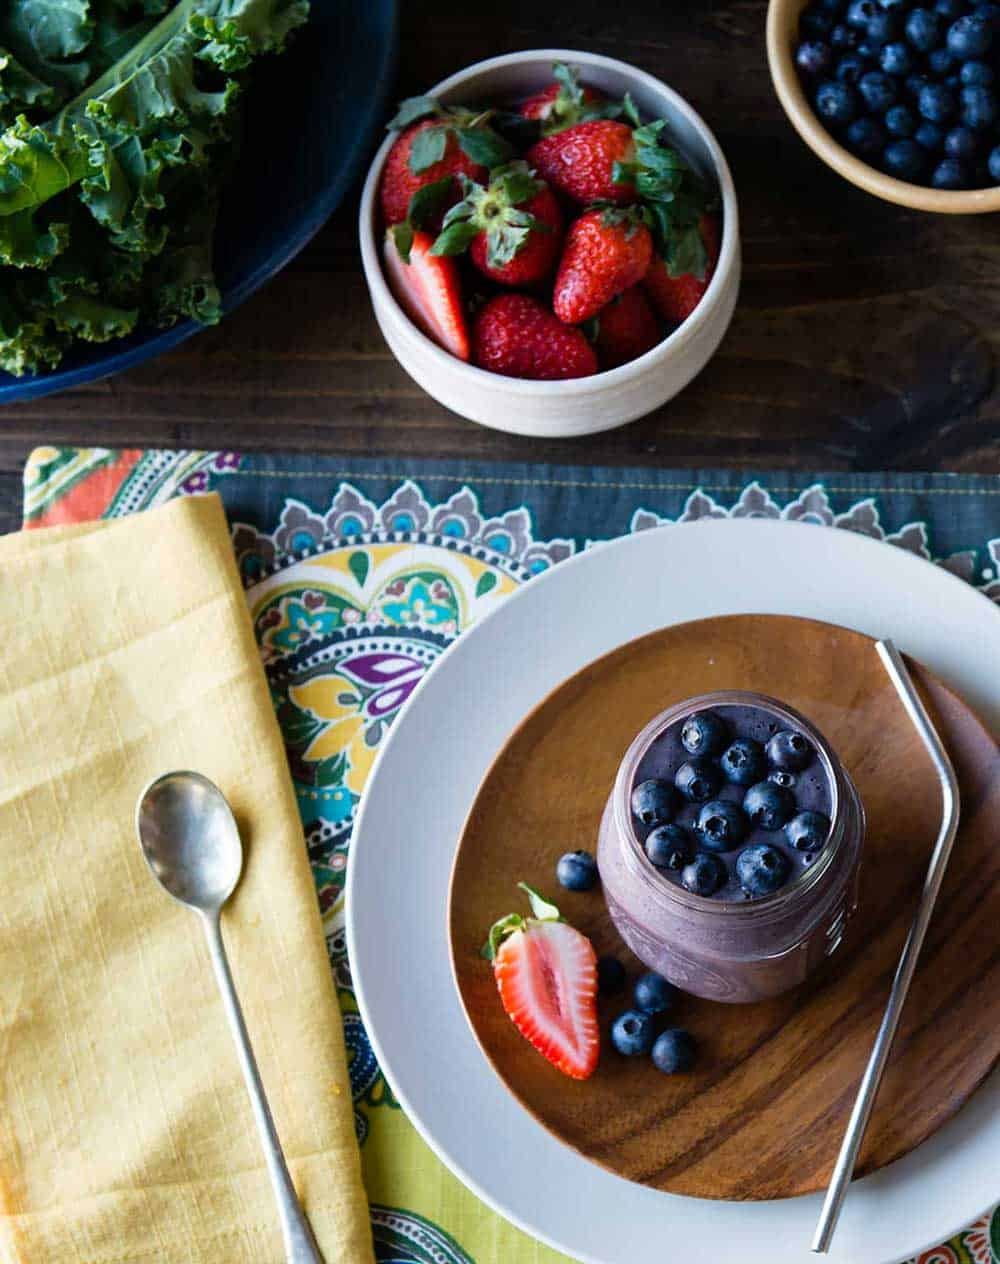 this beautiful berry smoothie topped with blueberries also makes the list of detox drinks for weight loss.